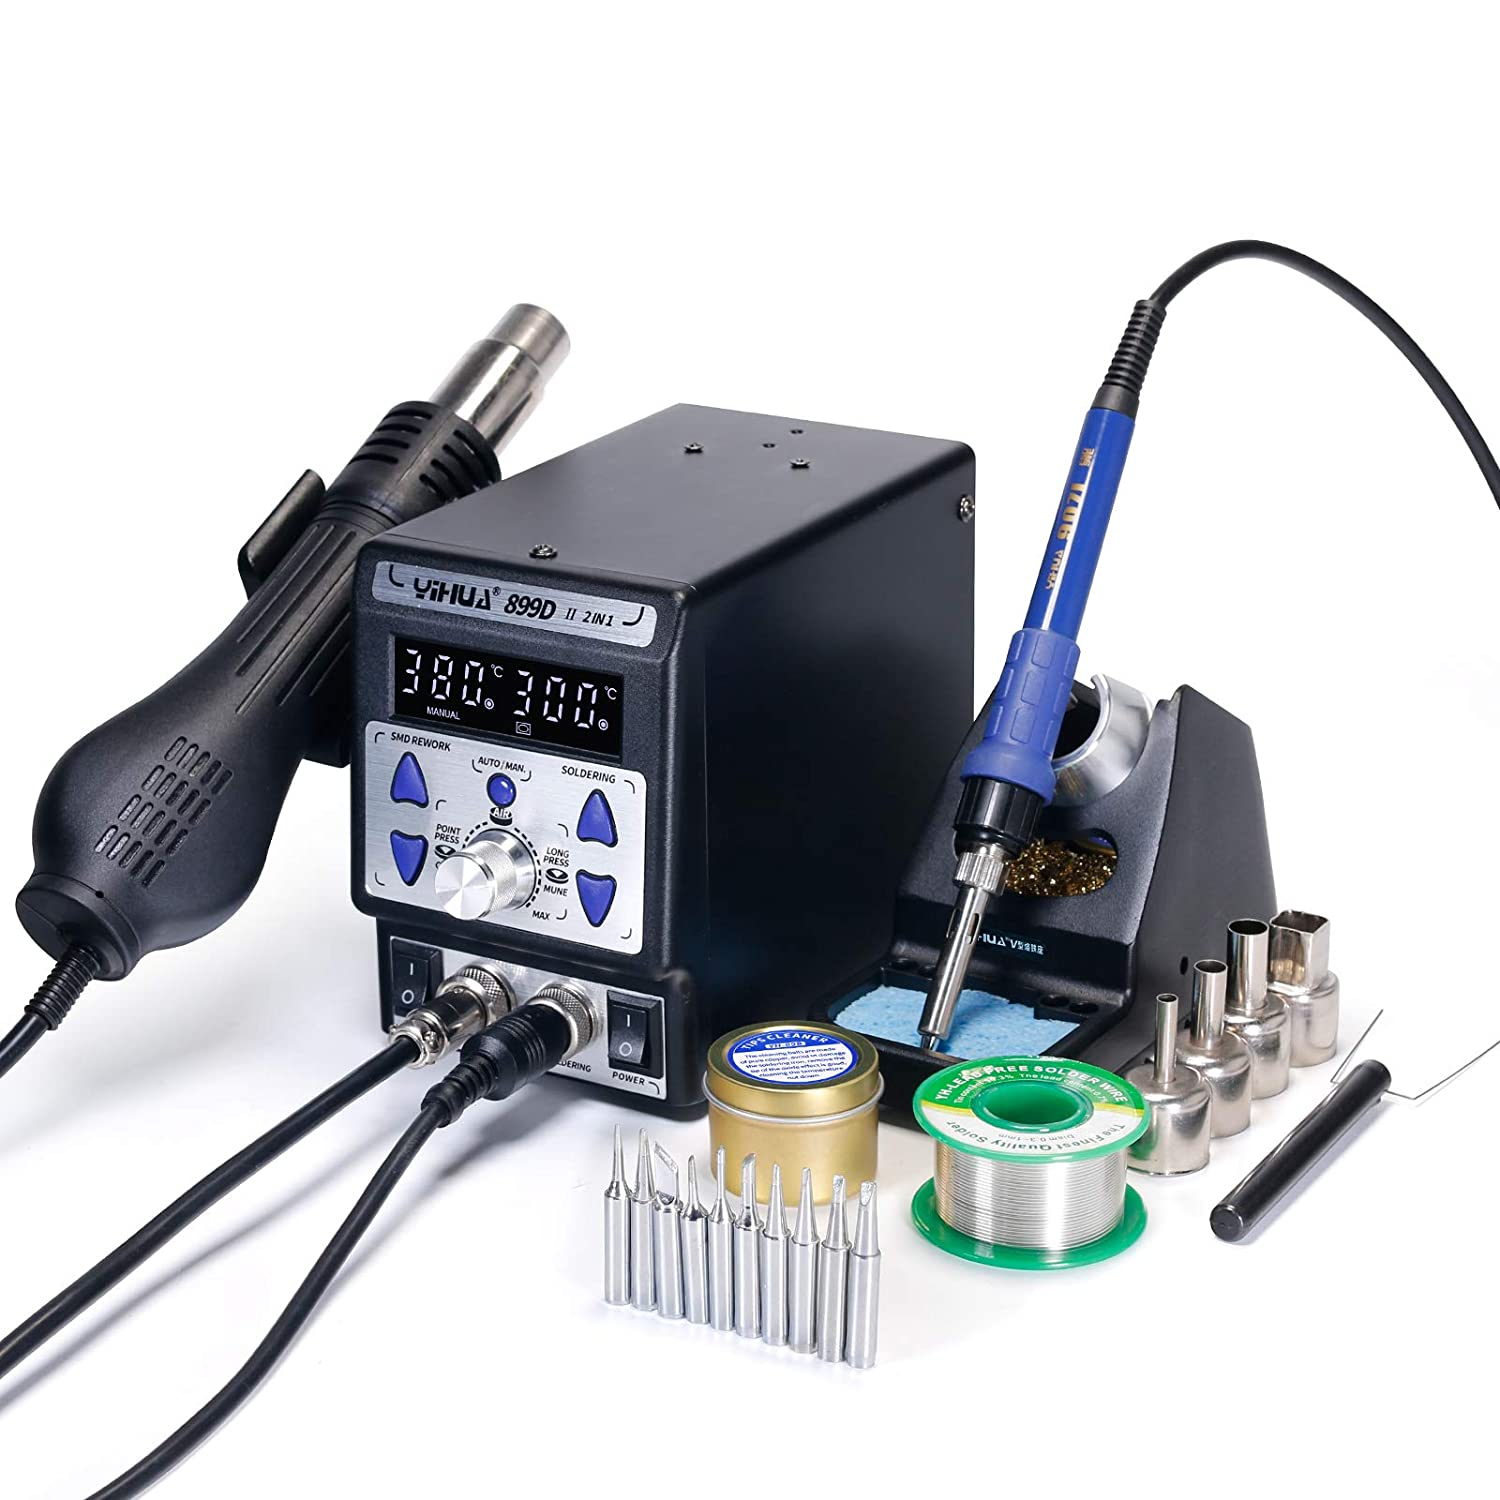 YH-899D II 2 in 1 Upgrade Constant Temp. Hot Air Rework Soldering Iron Station New Panel Design,11 Iron Tips + 4 nozzles YIHUA